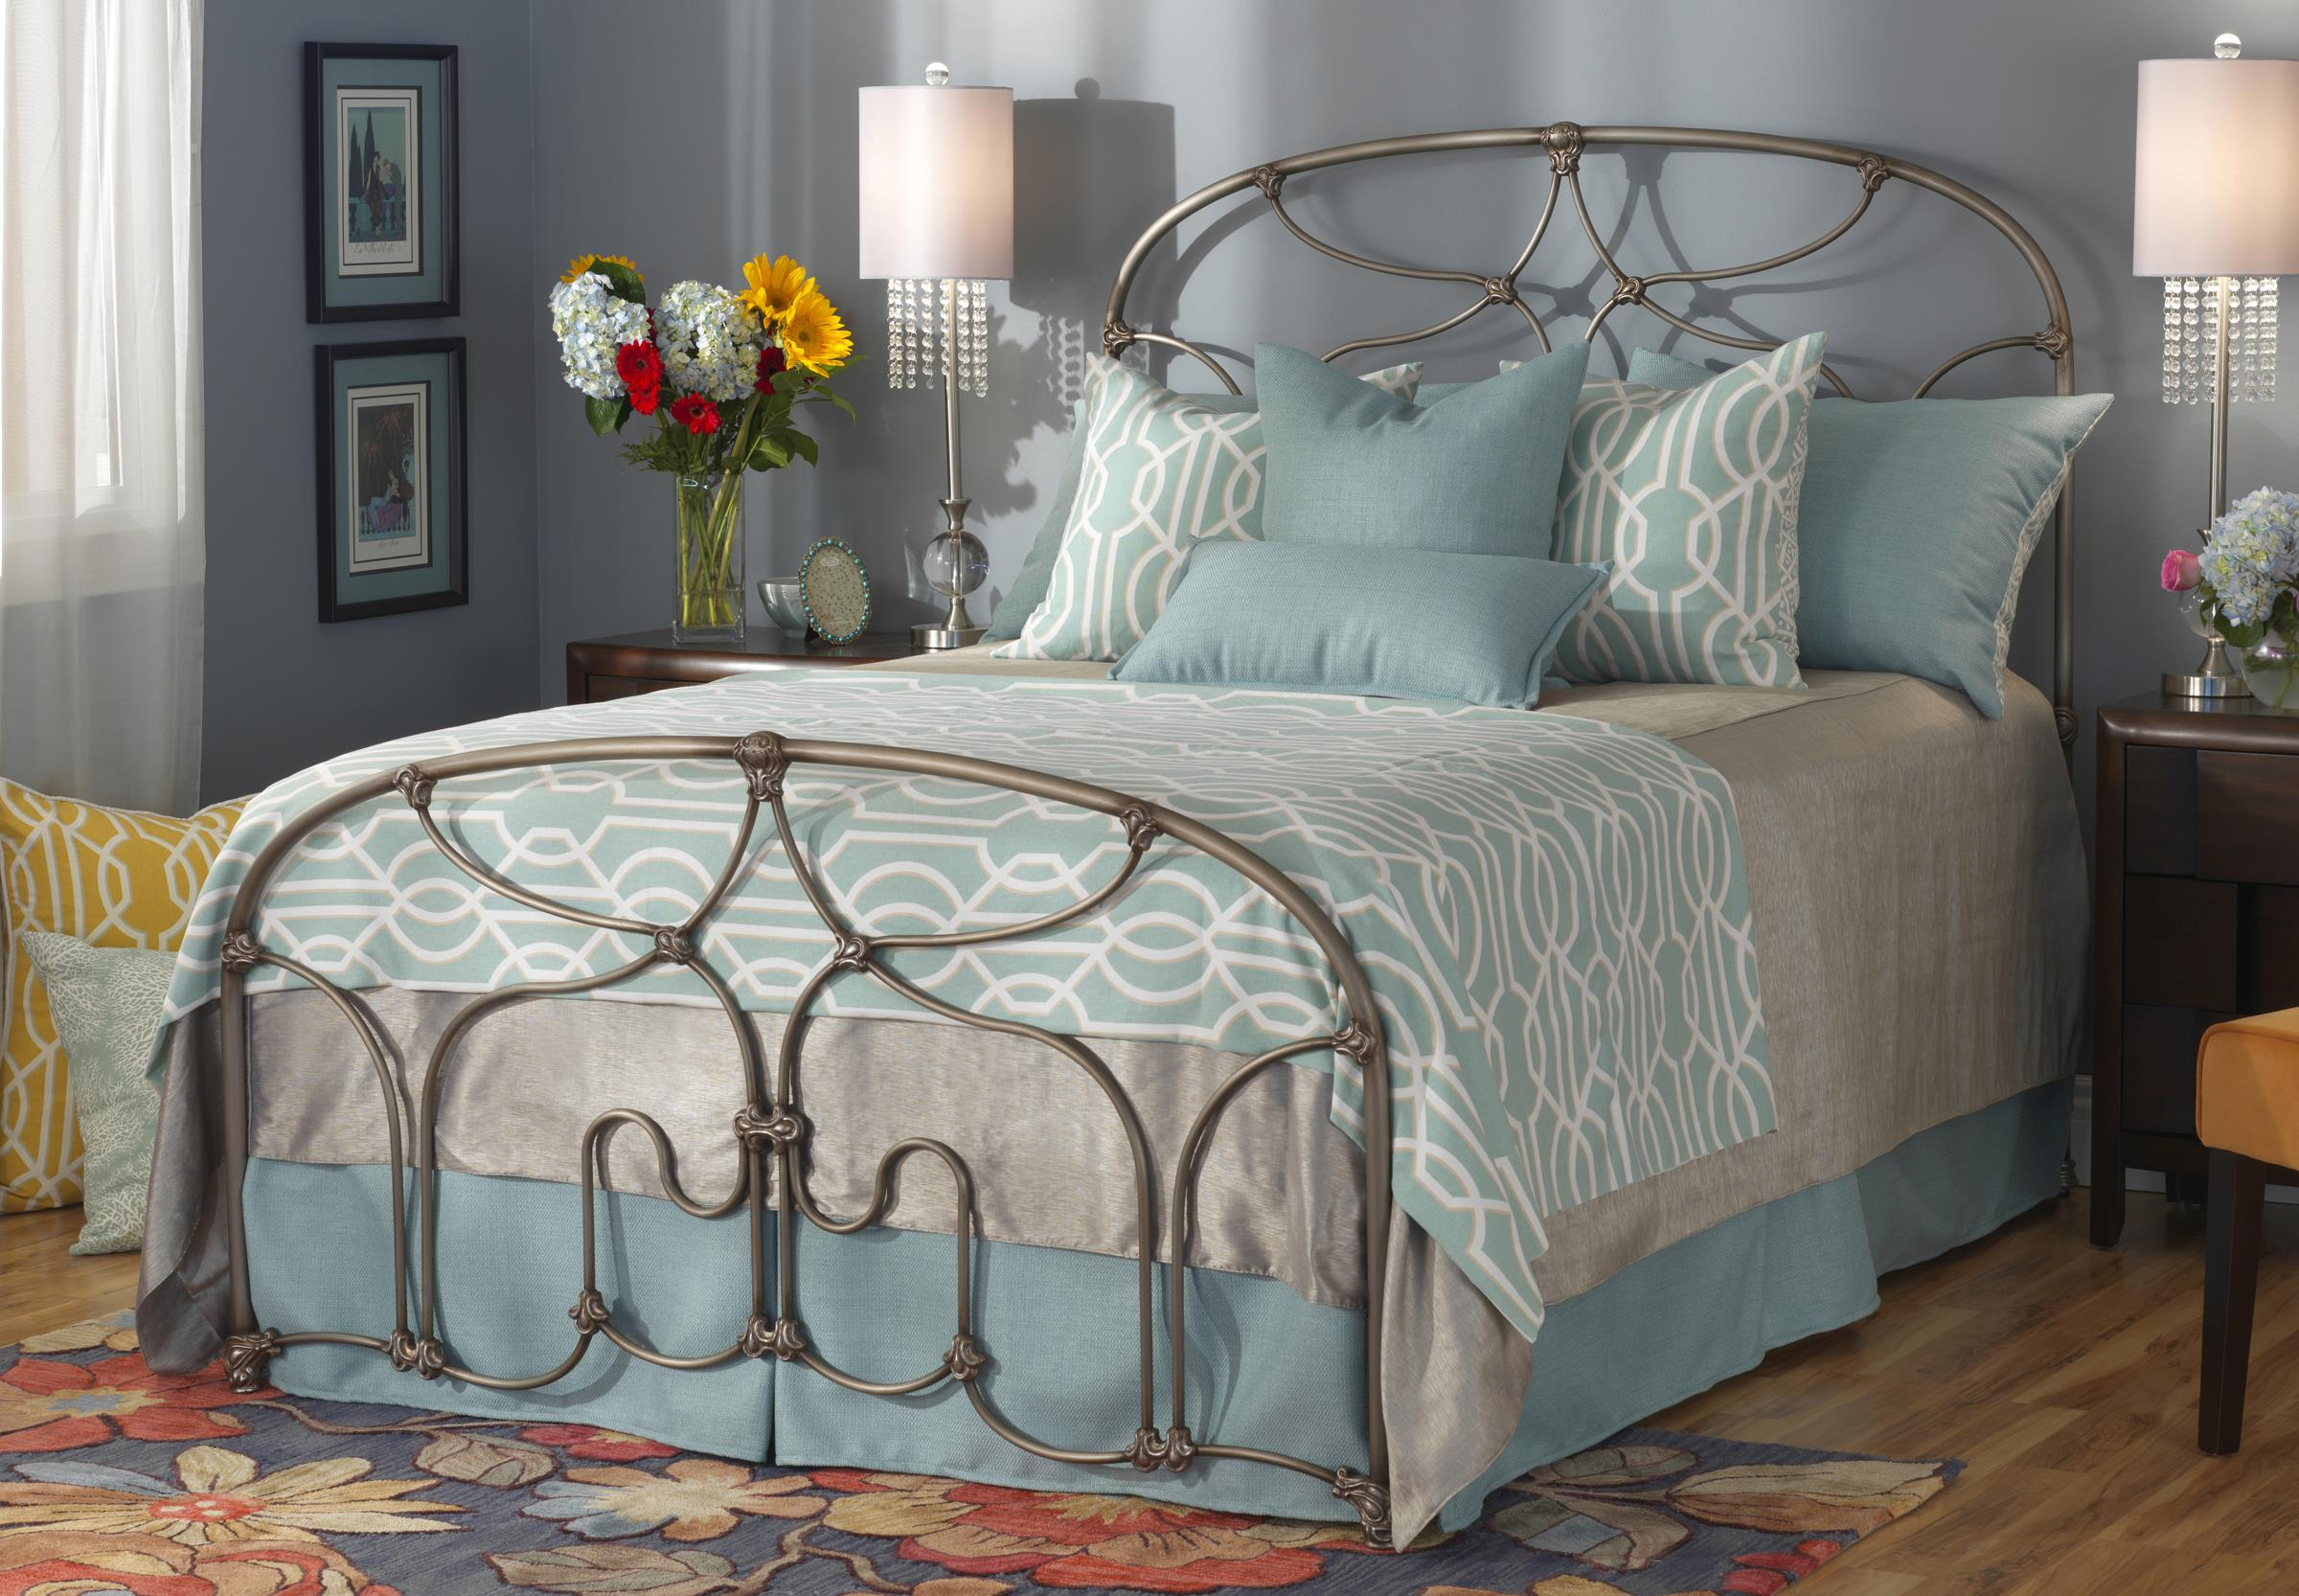 Wesley Allen Iron Beds Queen Lafayette Bed - Item Number: CB1061Q